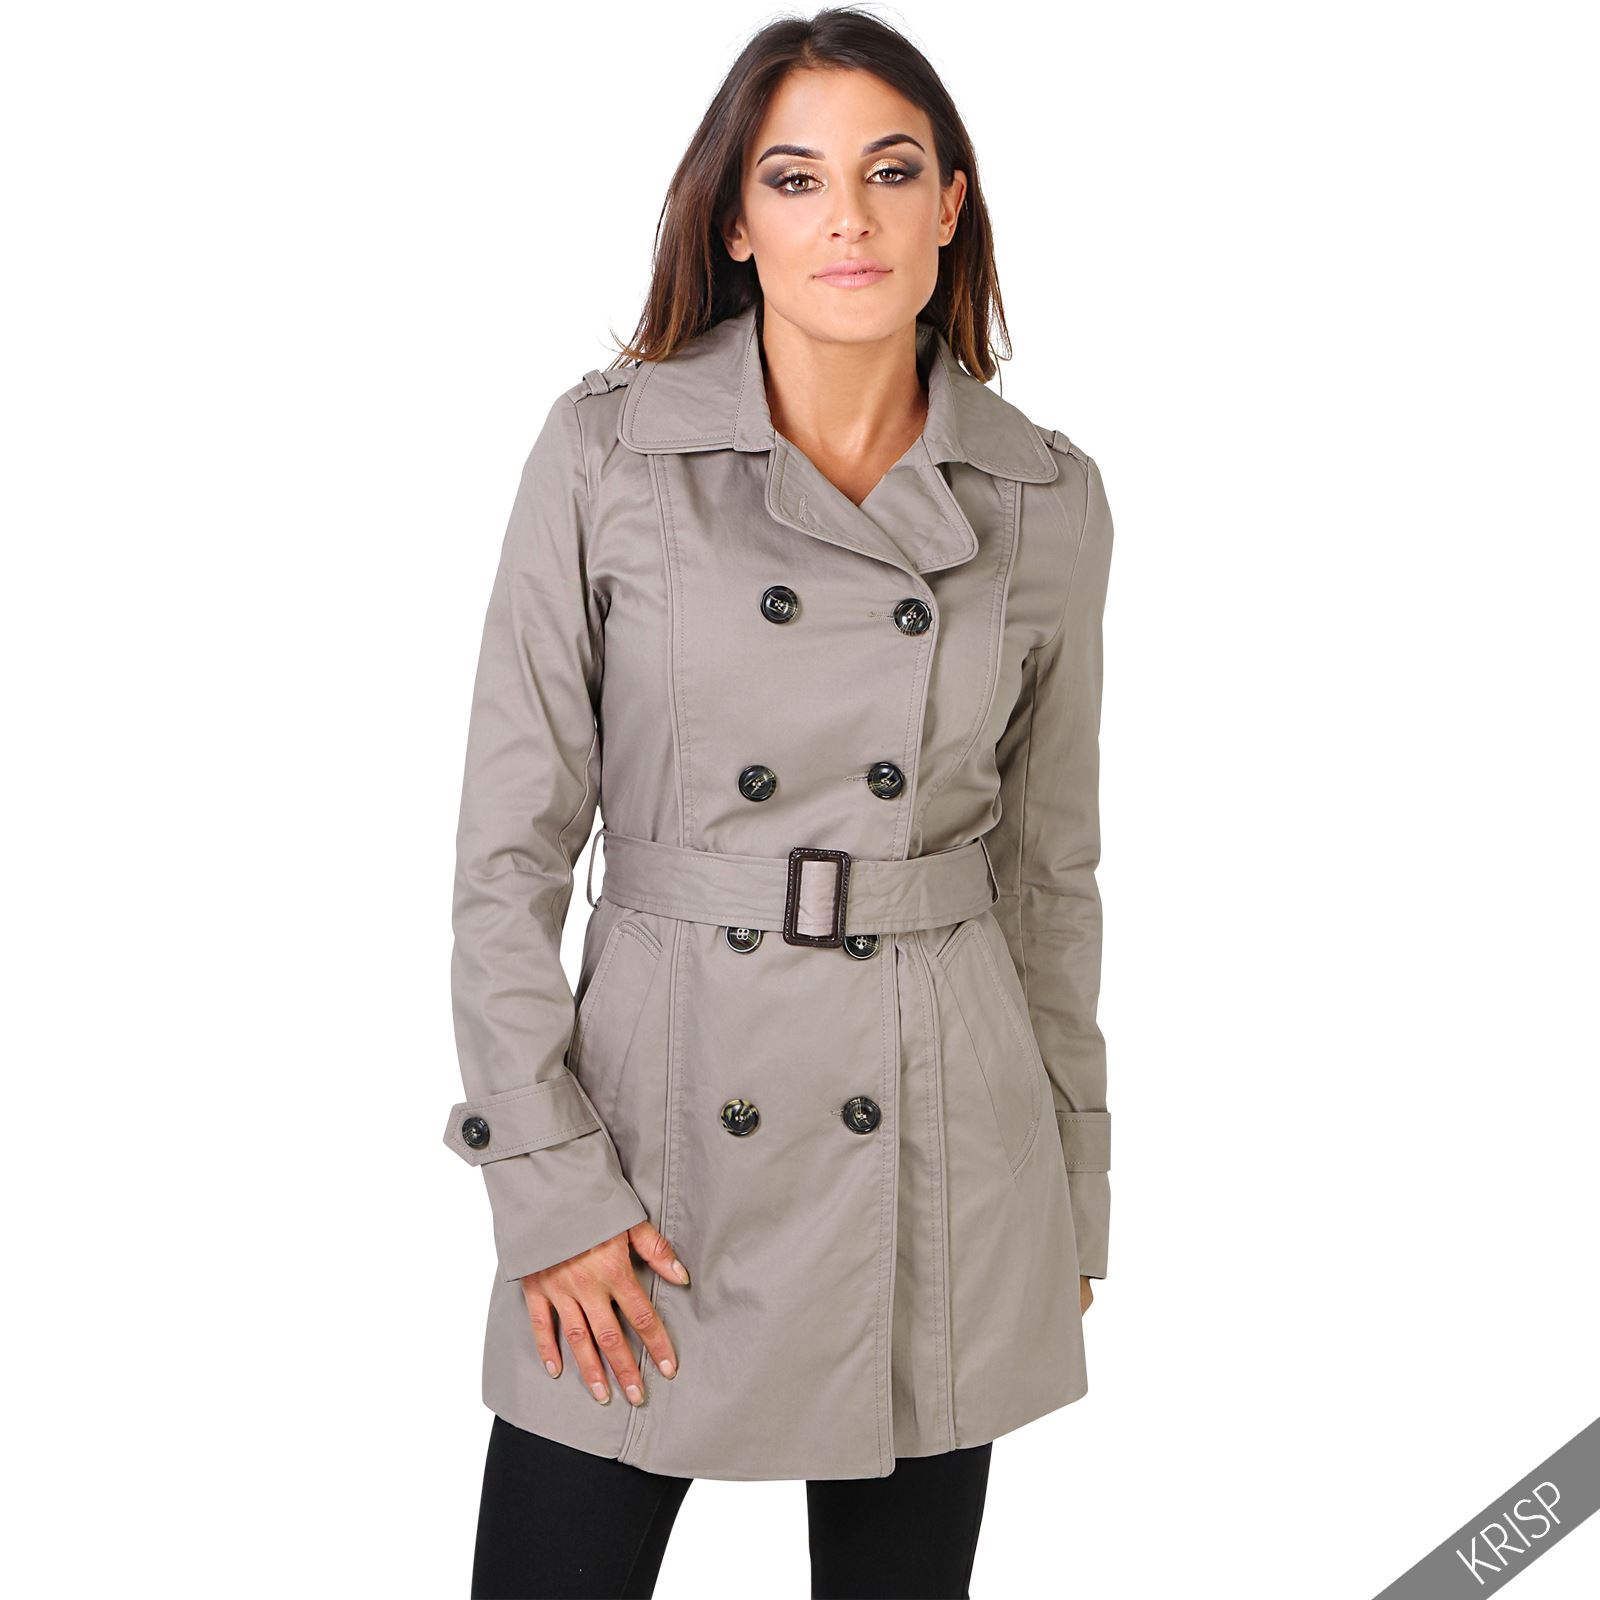 Women's trench coats have been popular for decades, and with each new interpretation of this iconic outerwear, the look grows more stylish and accessible. No longer confined to use as only a rain coat, this piece offers versatile styling to fit any wardrobe.